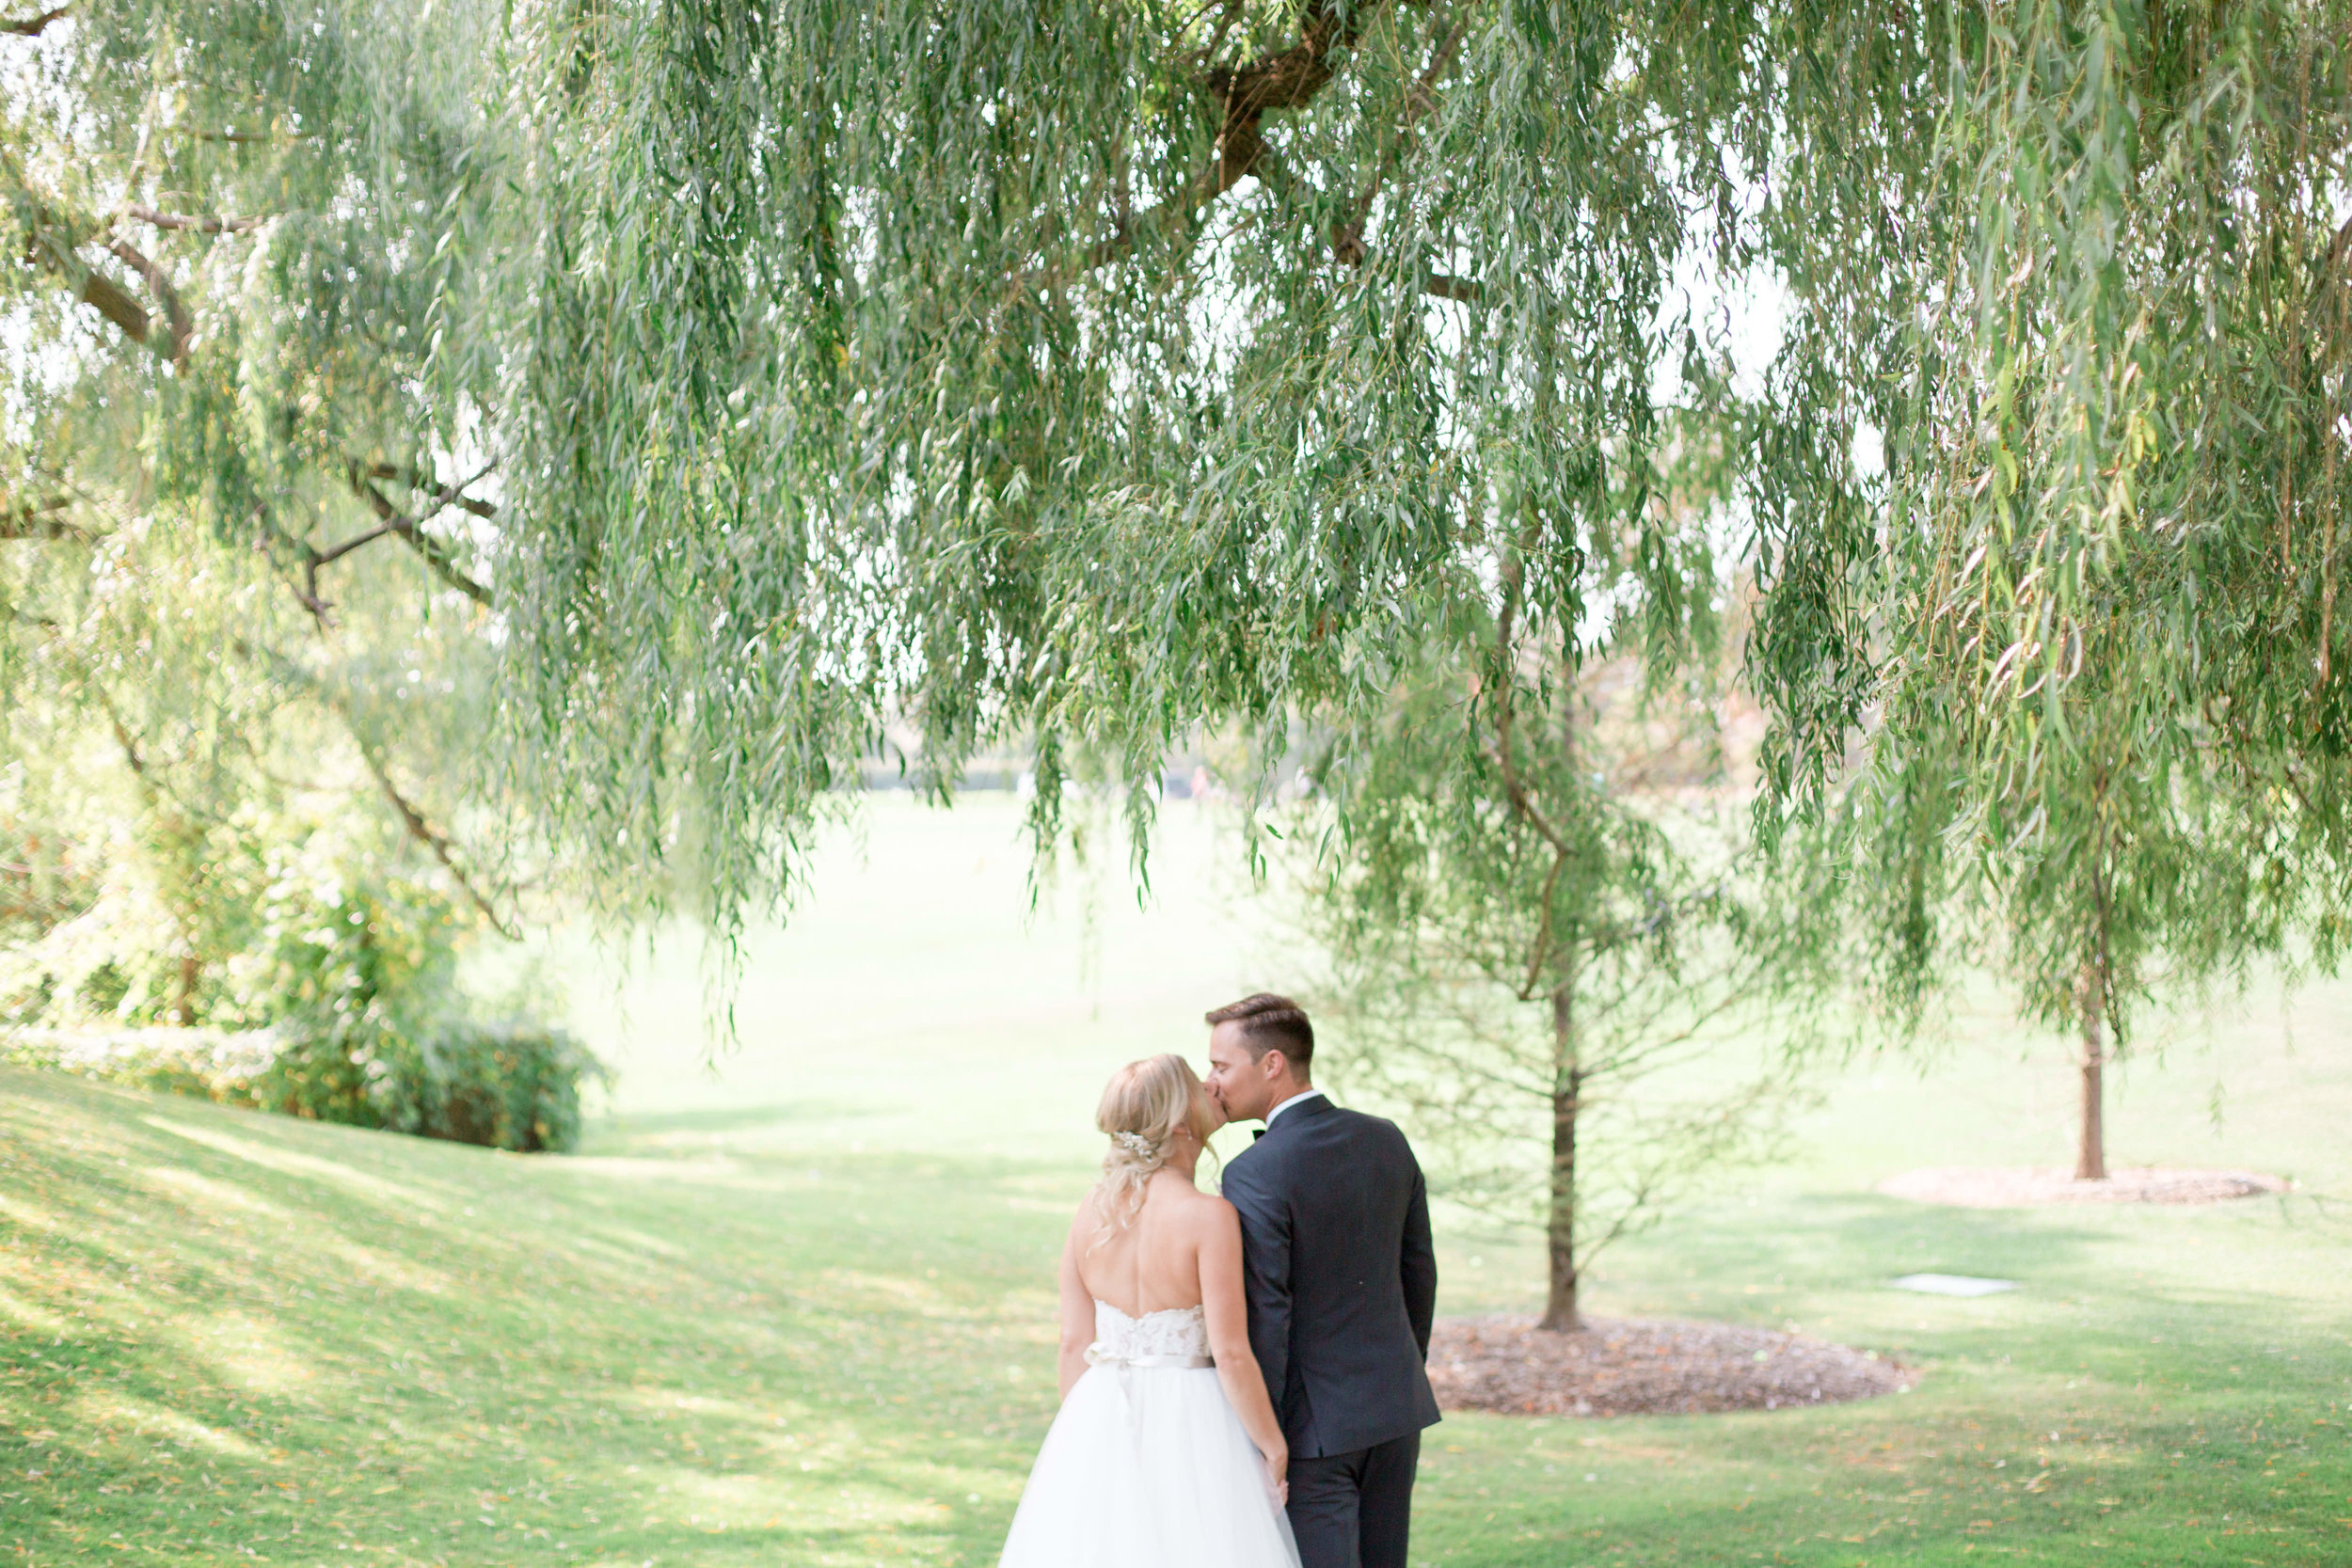 Kelsey___Daniel___High_Res_Finals___Daniel_Ricci_Weddings_206.jpg